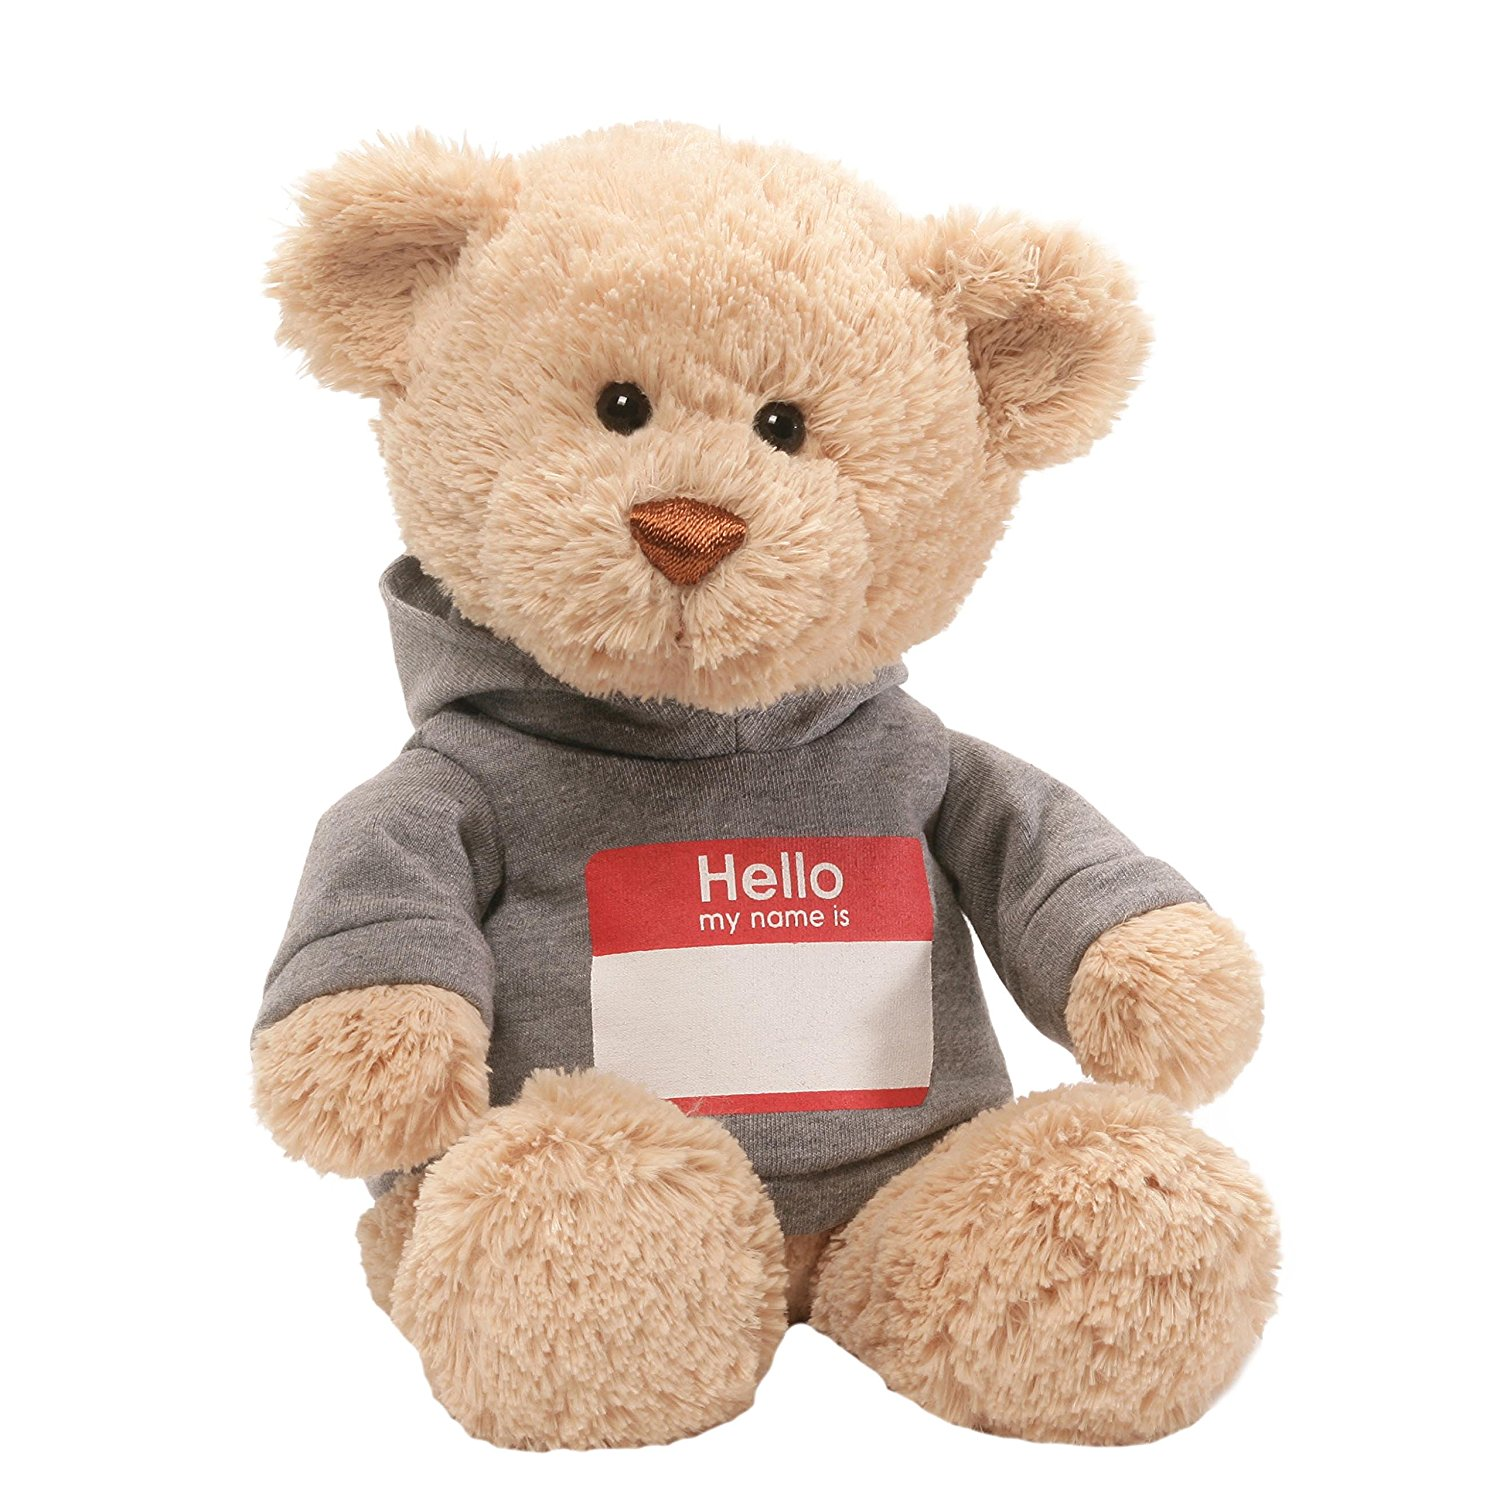 Hello My Name Is T-Shirt Stuffed Teddy Bear, Beige plush teddy bear featuring gray hoodie with a printed Hello My Name Is nametag By GUND